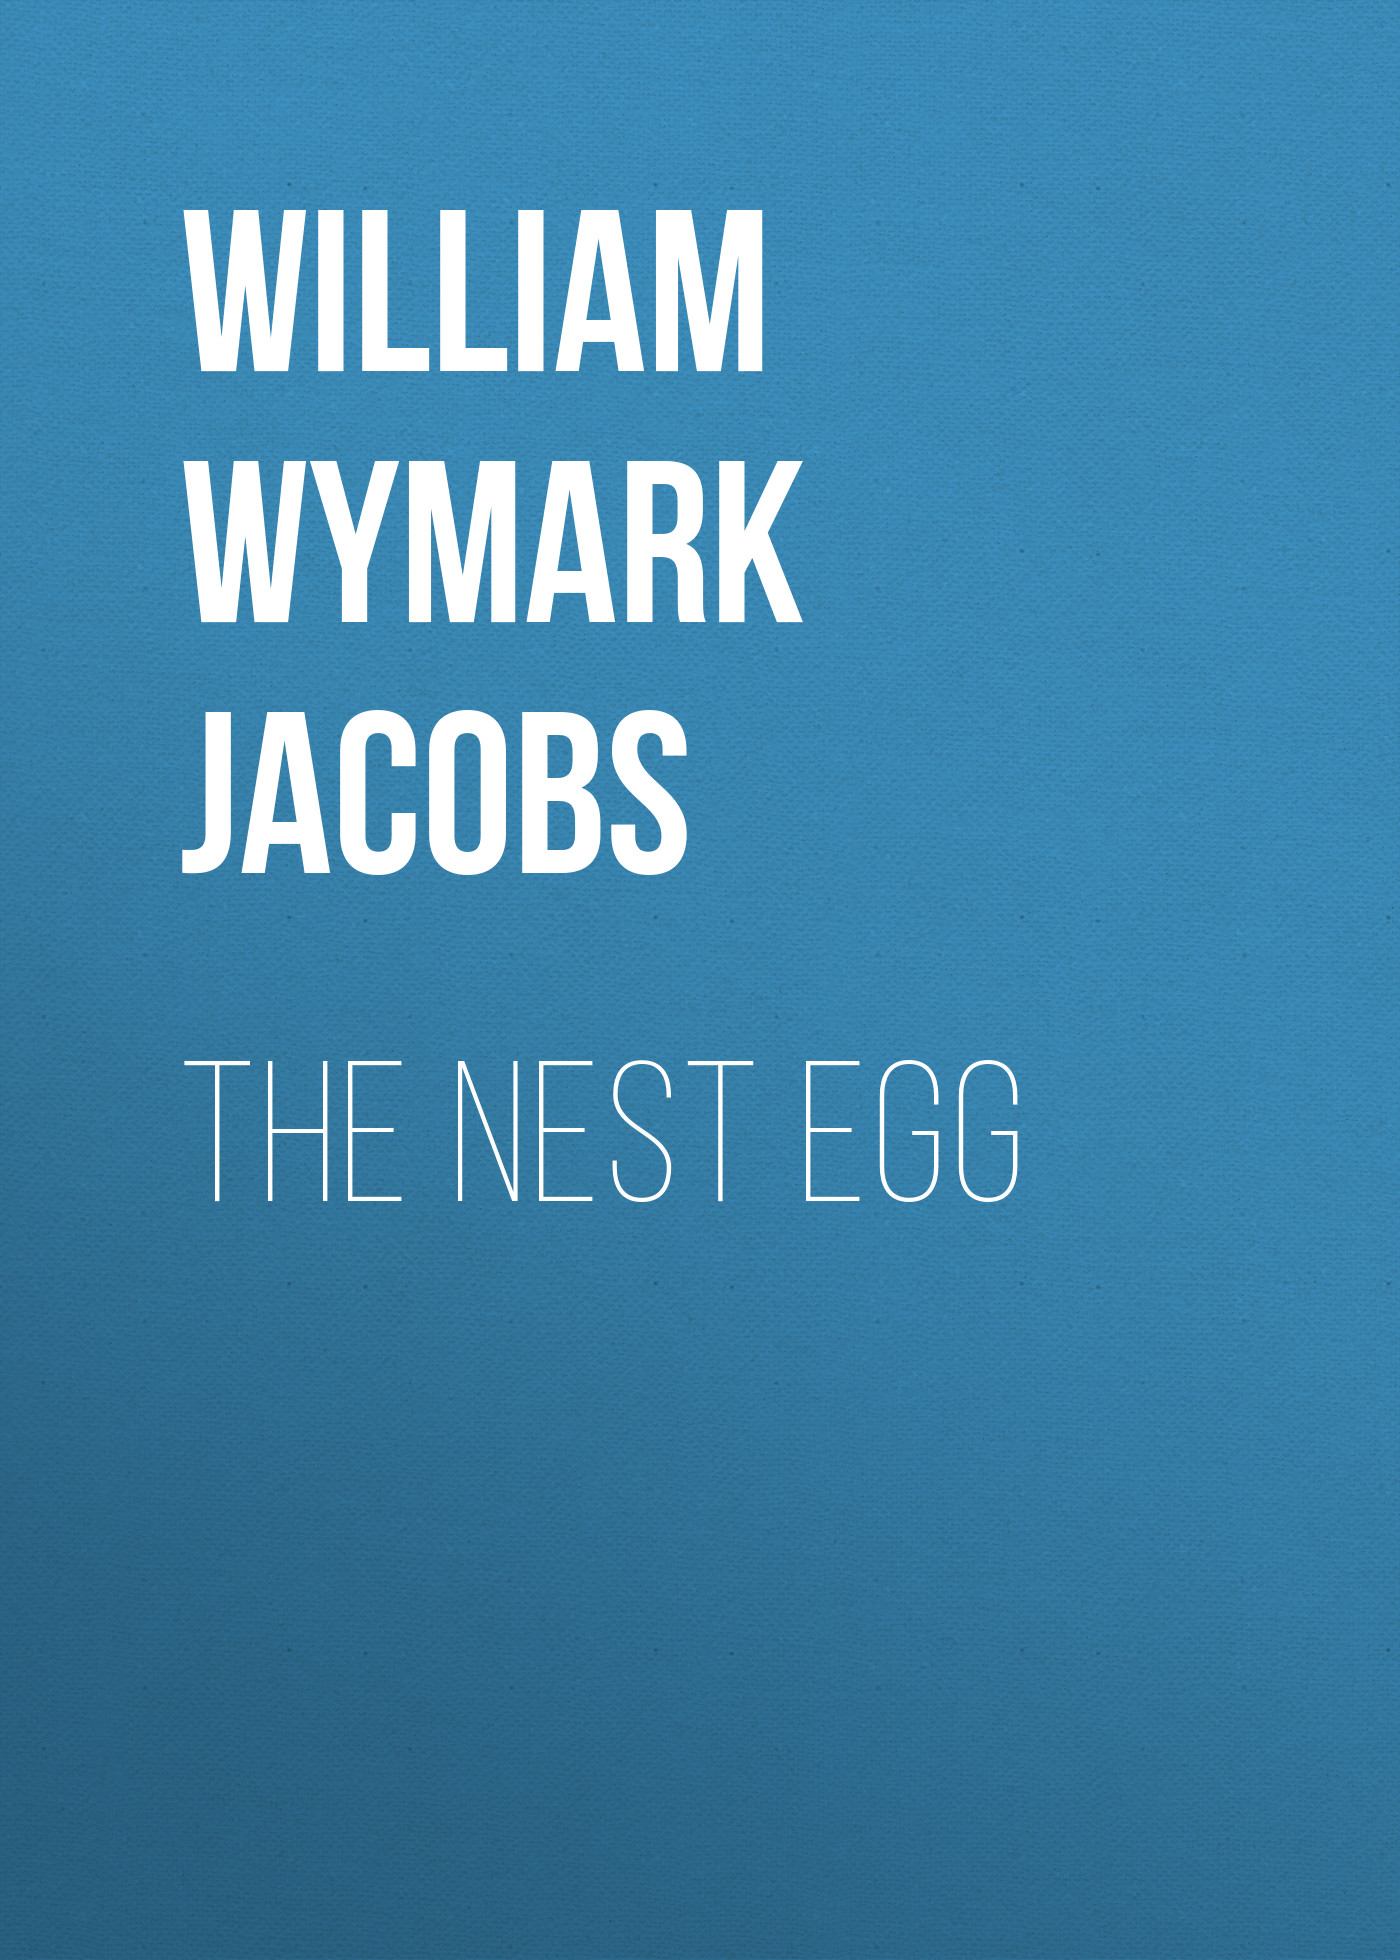 William Wymark Jacobs The Nest Egg william wymark jacobs breaking a spell